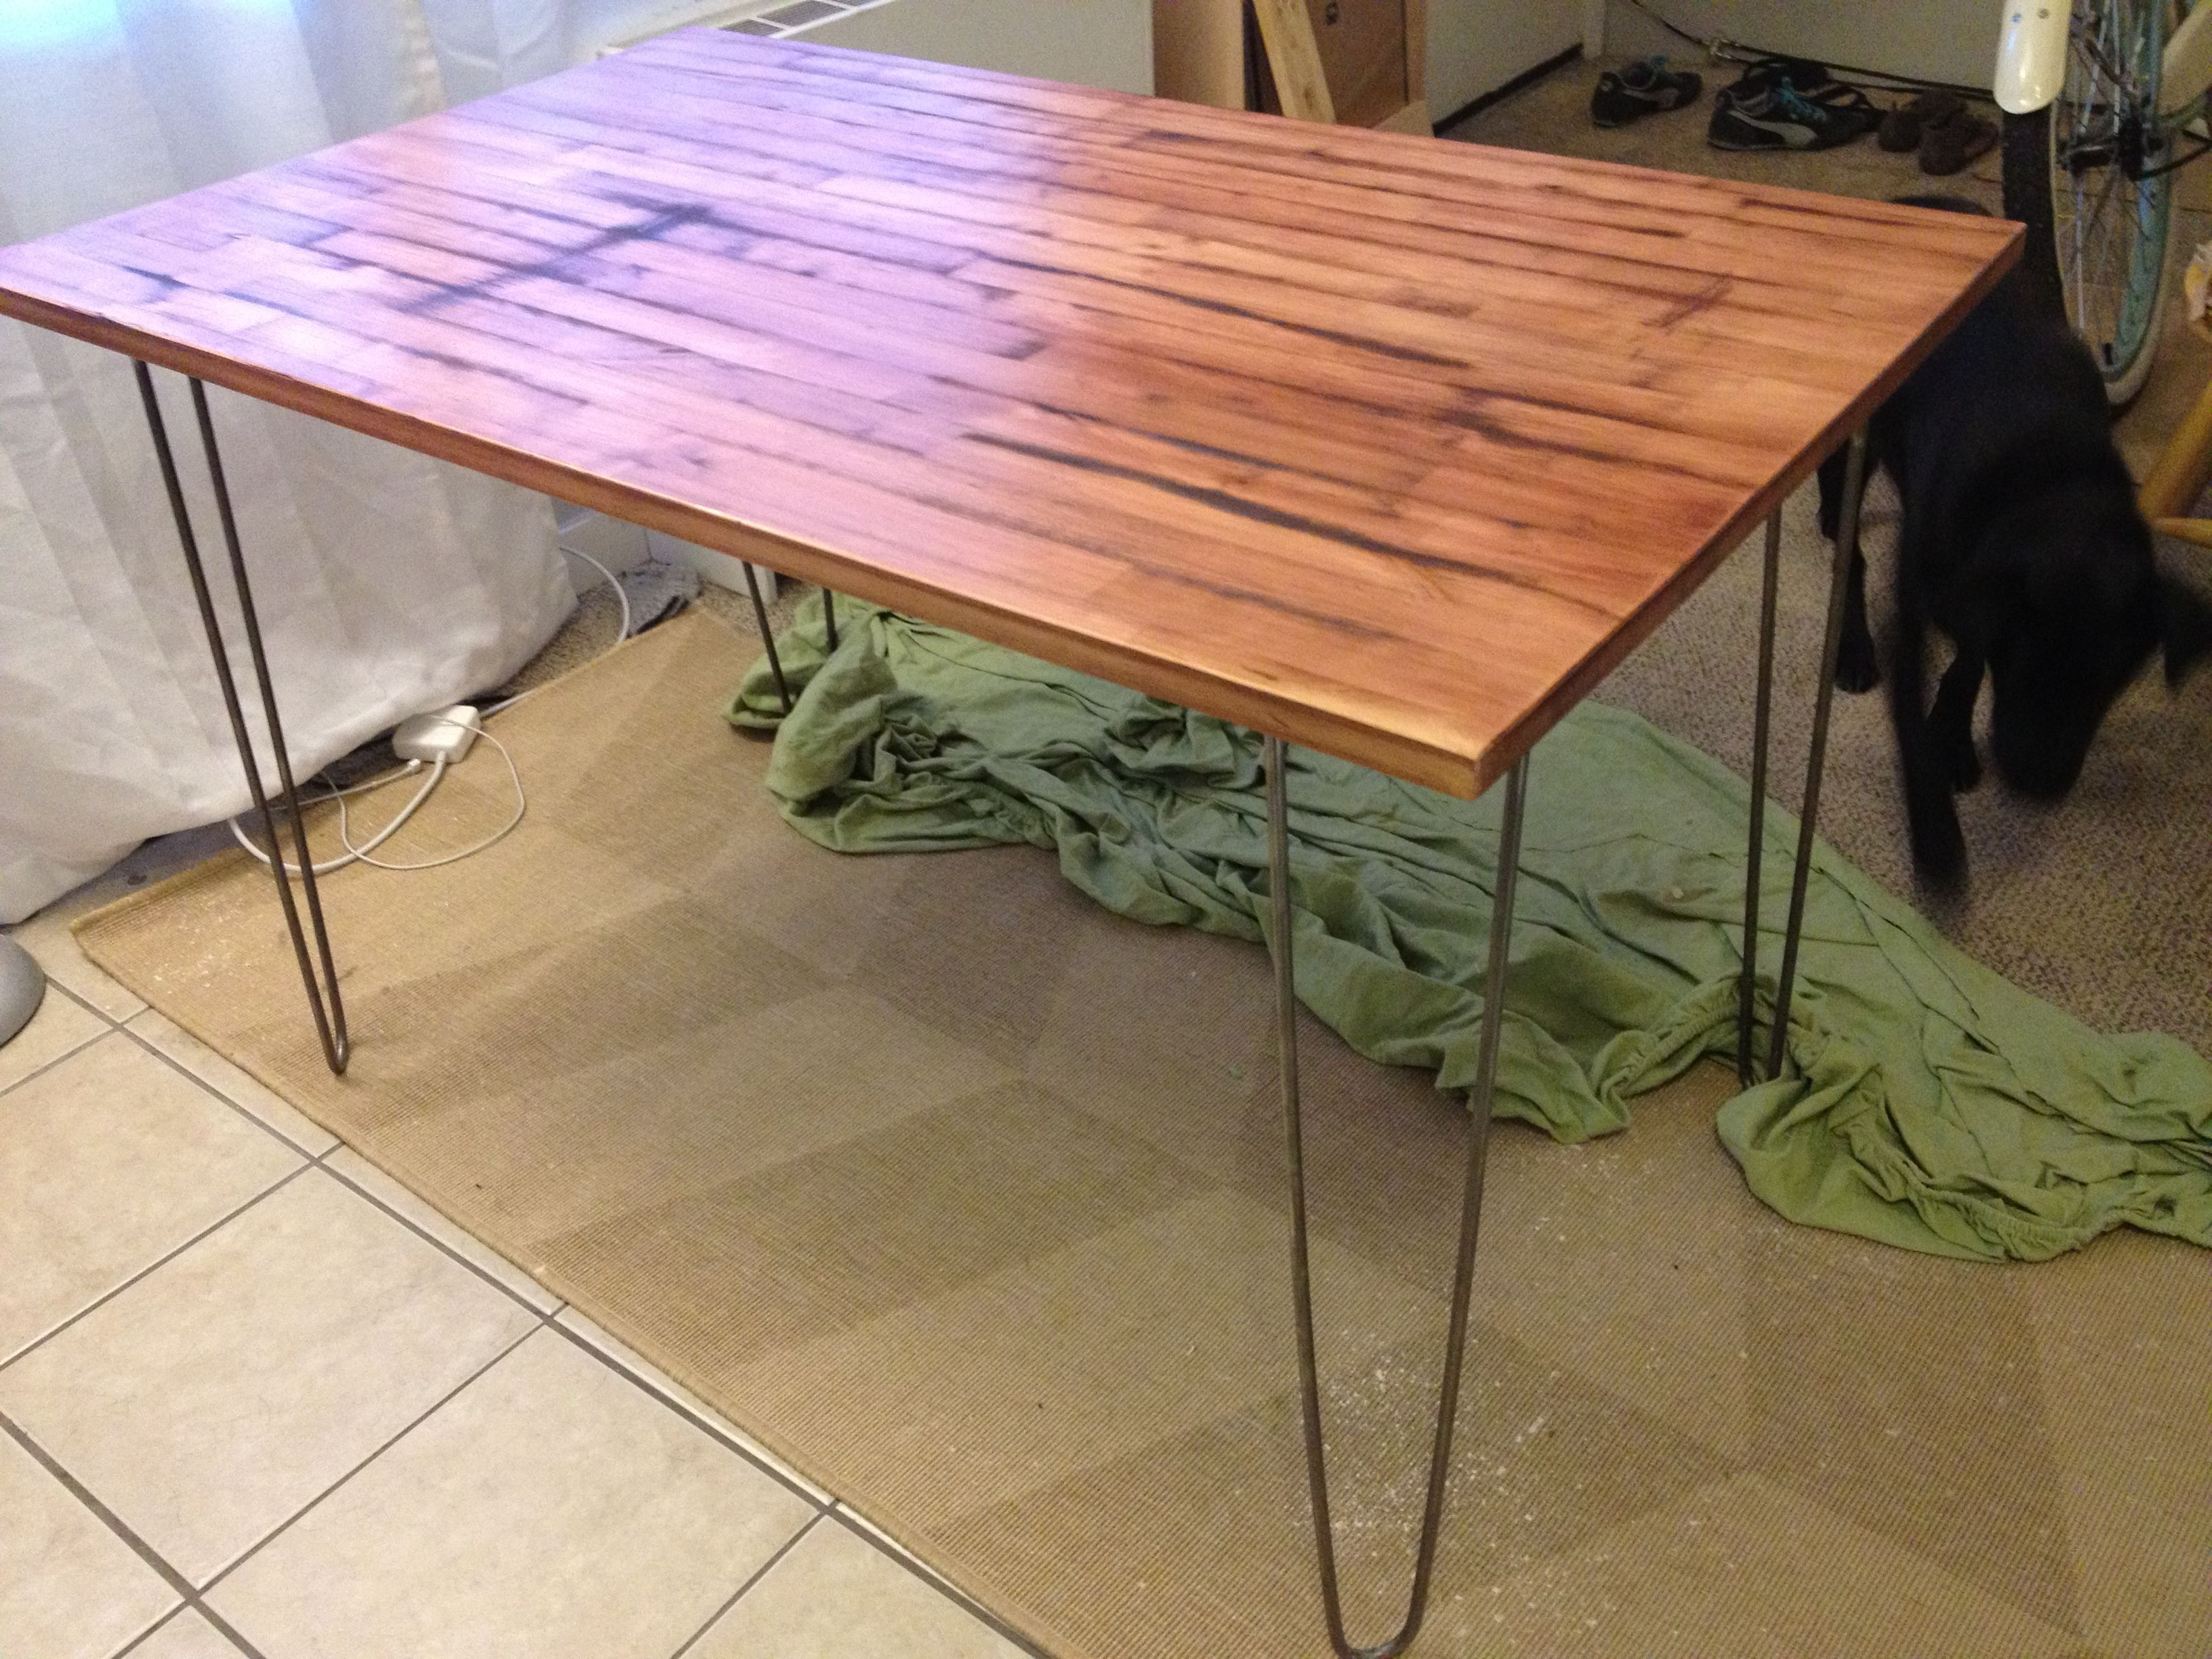 ikea table for entryway with nice industrial hairpin legs and reclaimed wood top design